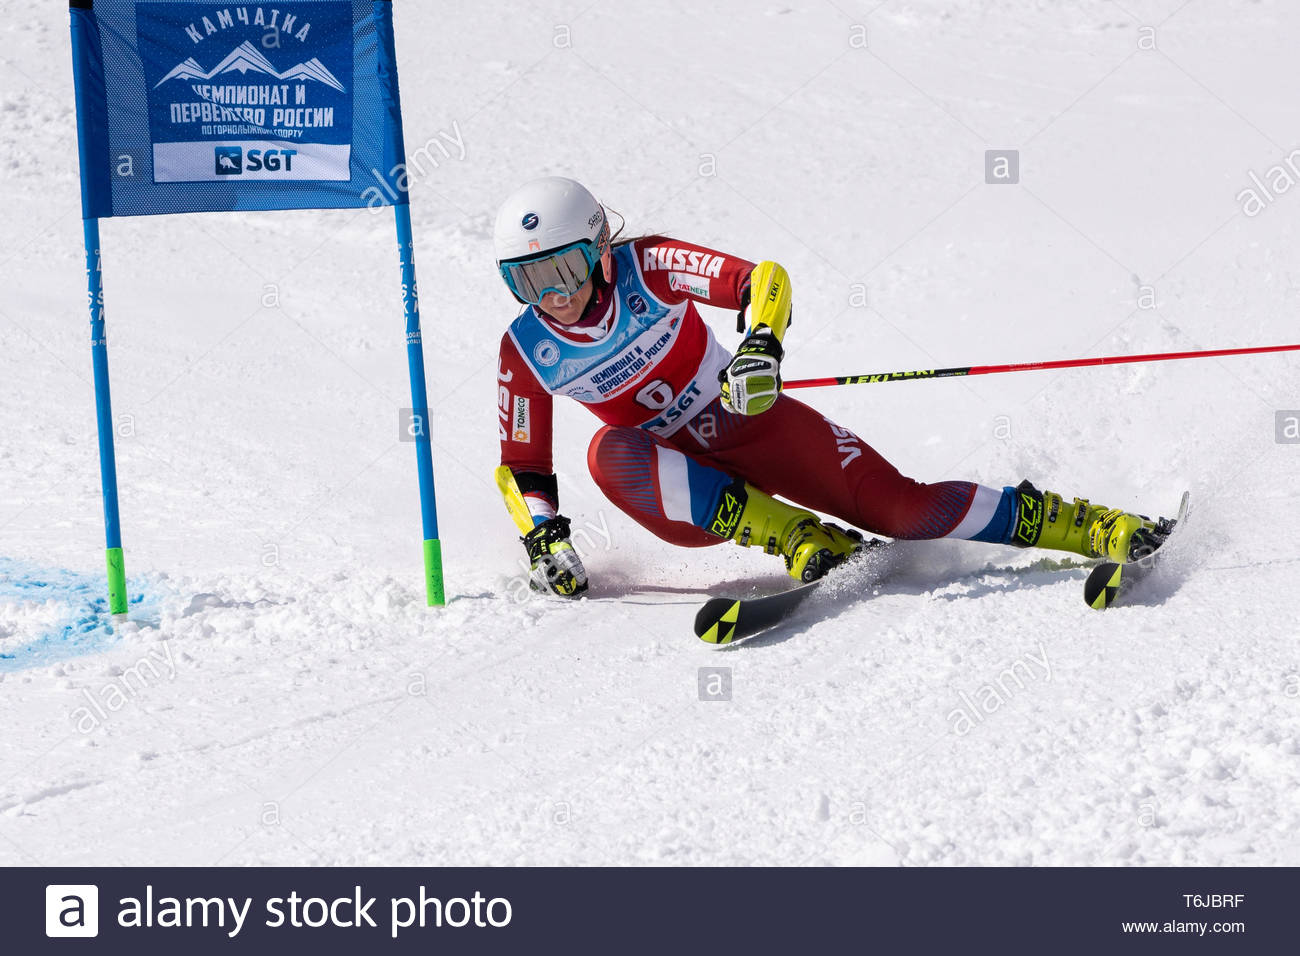 KAMCHATKA PENINSULA, RUSSIAN FEDERATION - APRIL 1, 2019: Russian Women's Alpine Skiing Championship, giant slalom. Mountain skier Sofya Krokhina (Mosc - Stock Image